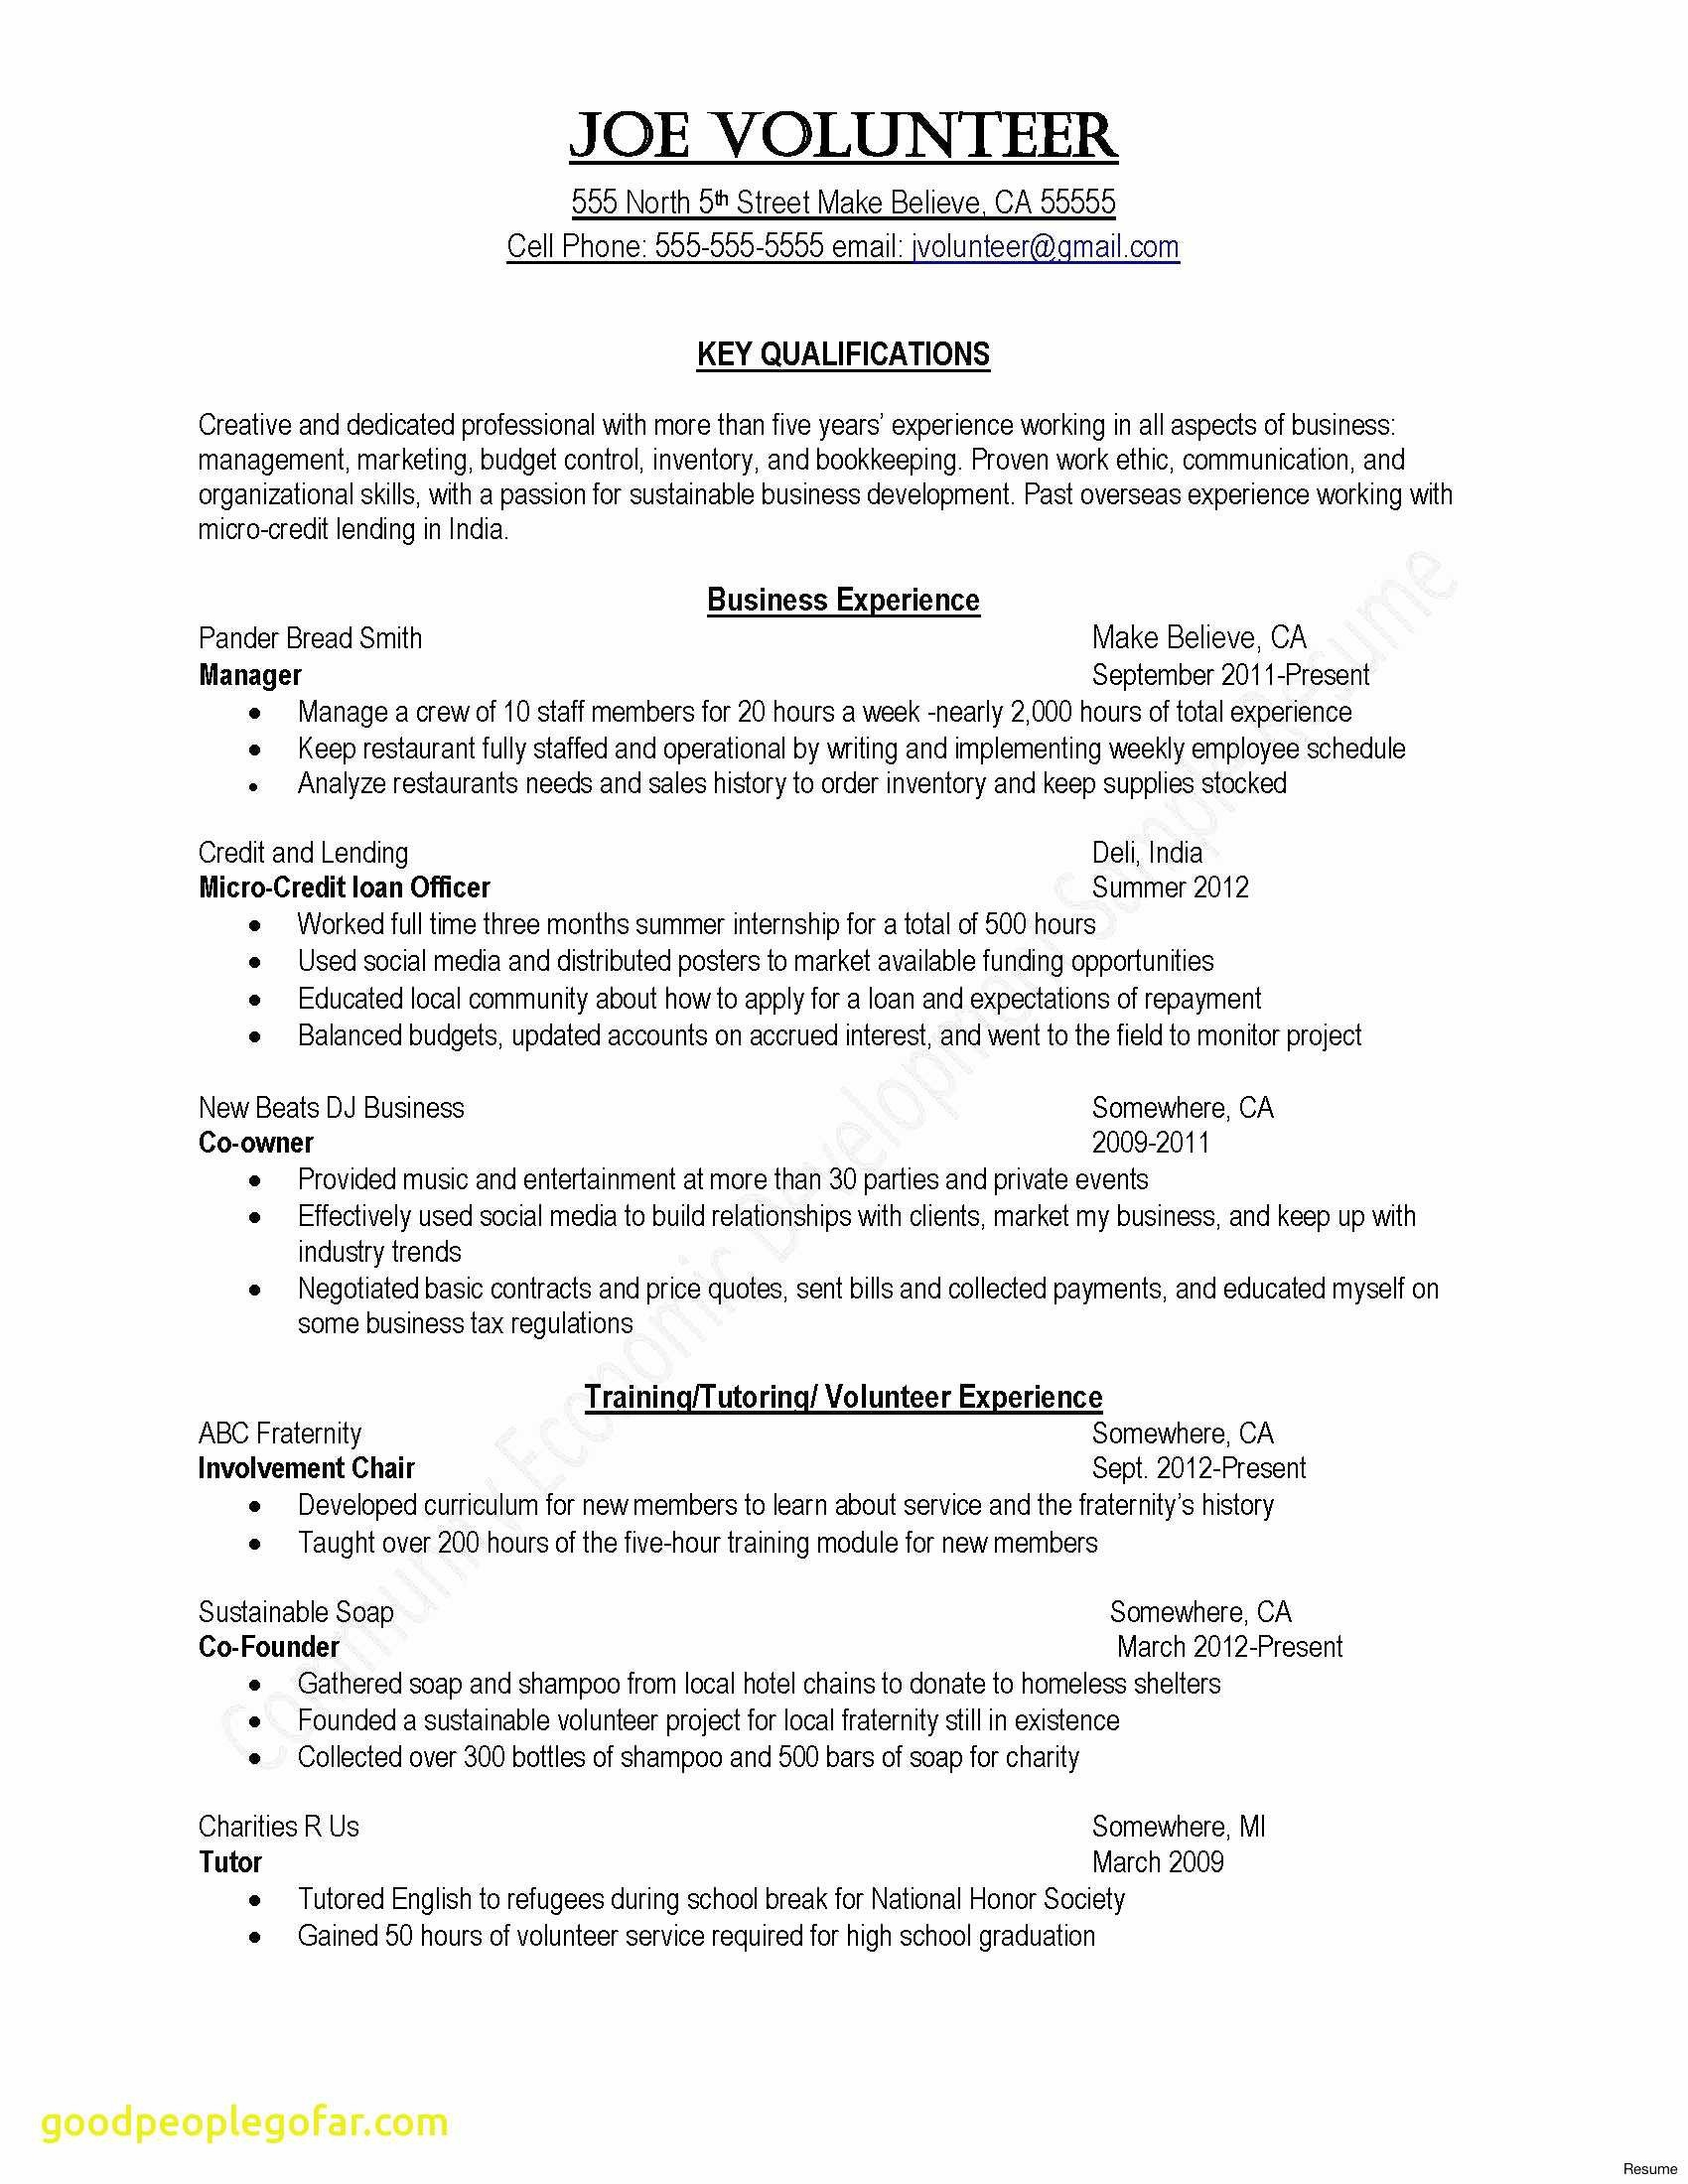 20 years experience resume example-College Application Resume Examples Awesome Painter Resume 0d 5-o